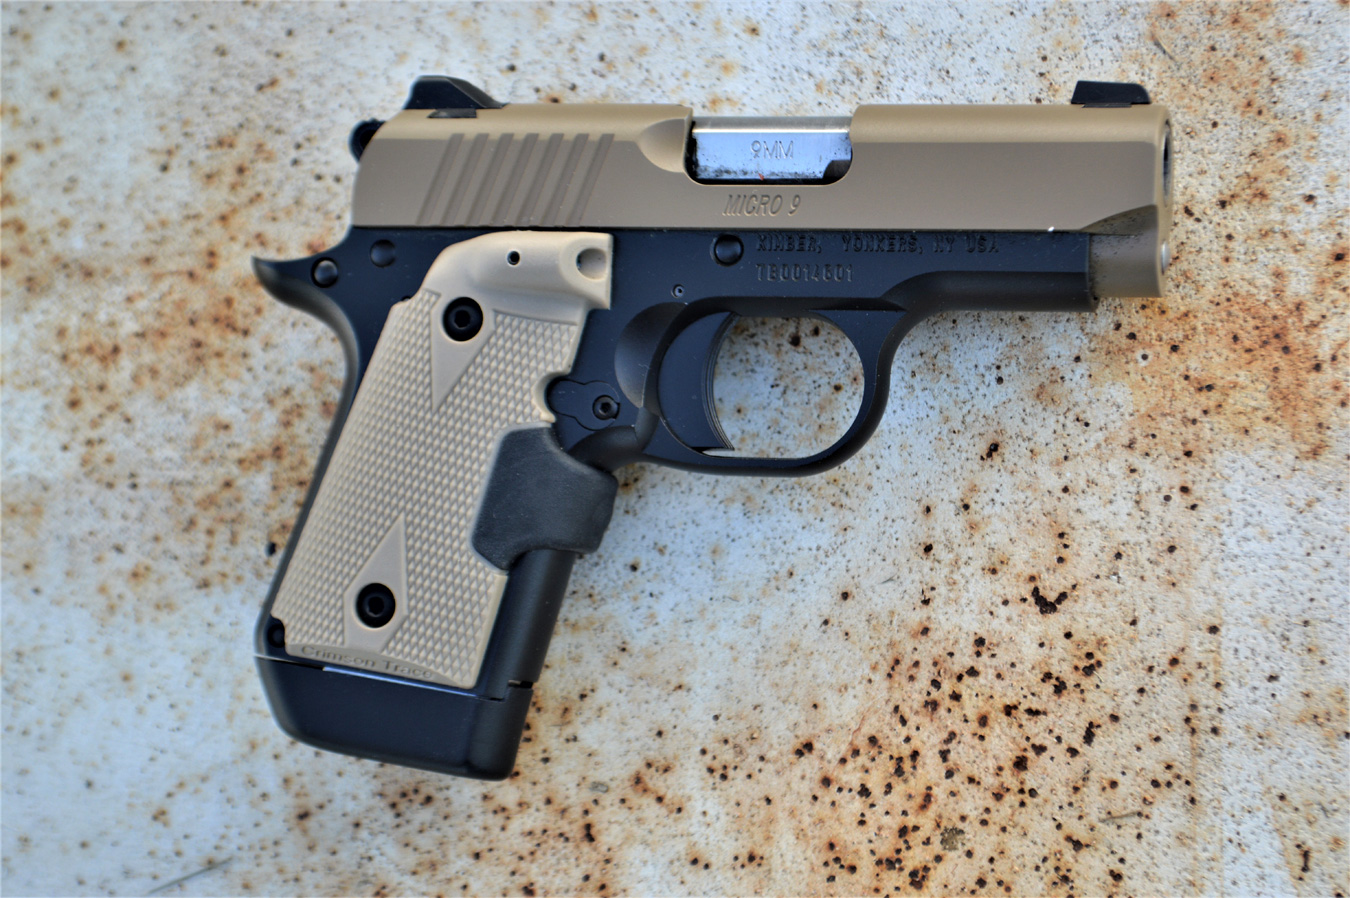 Kimber Micro 9 pistol with Crimson Trace Lasergrip